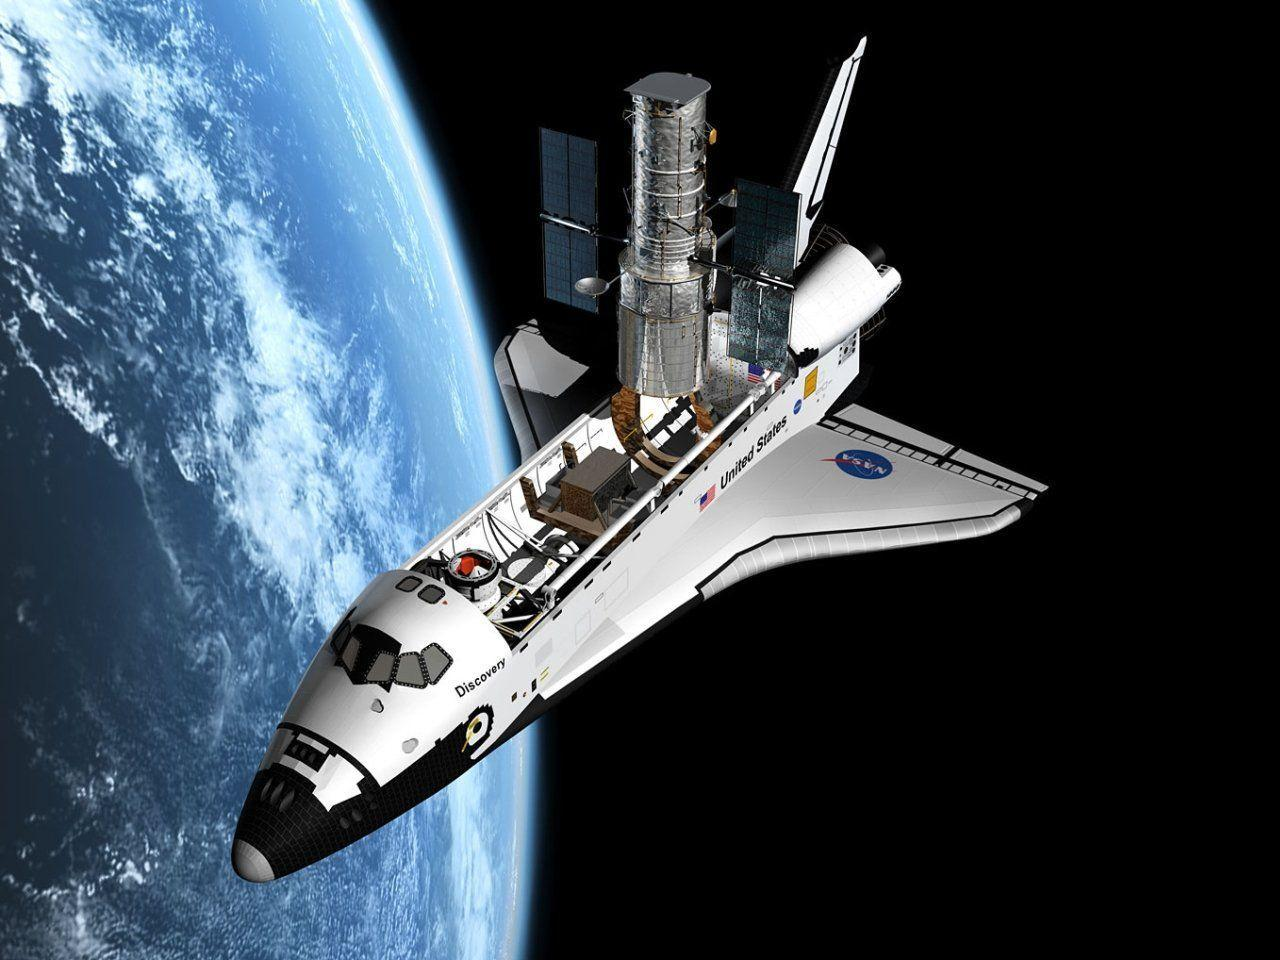 hd space shuttle in space - photo #22